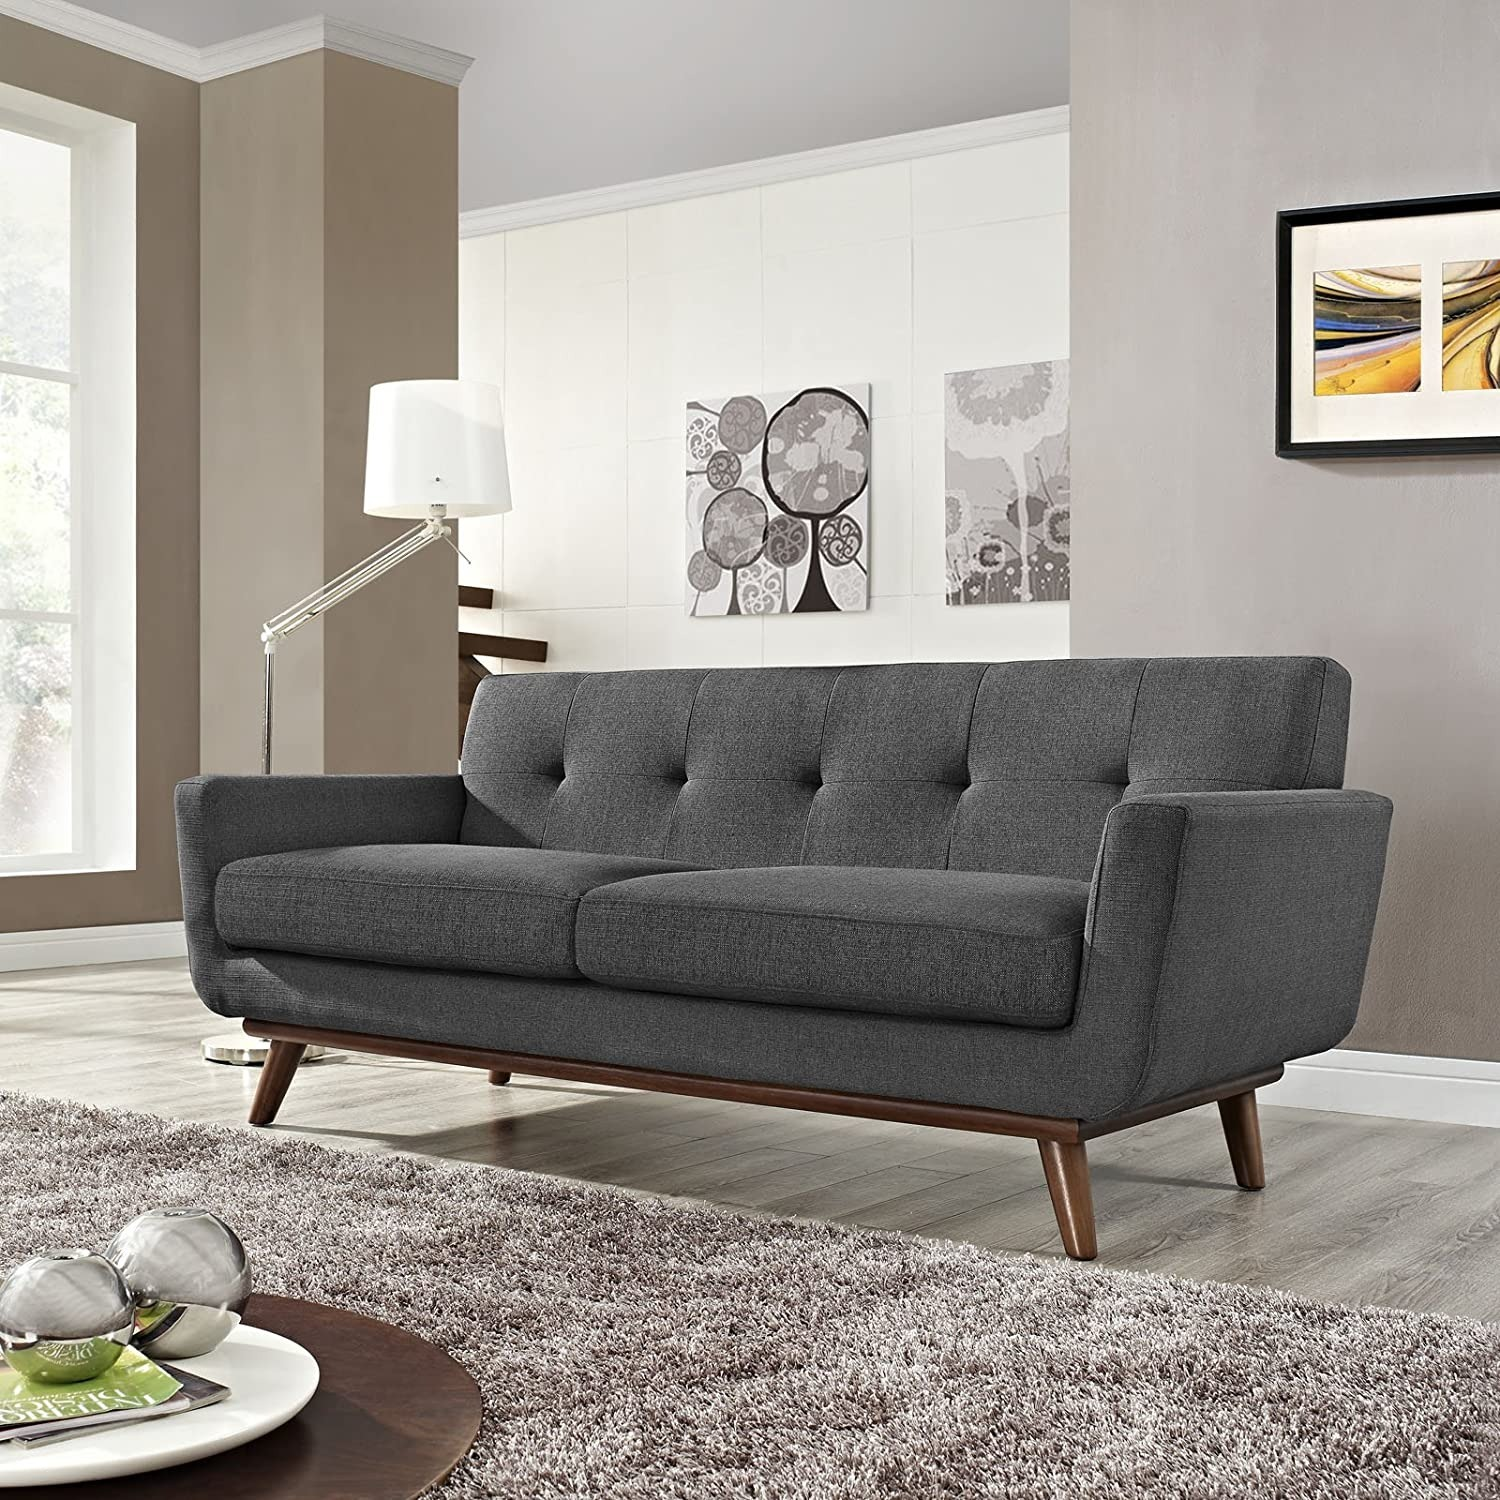 Modern Loveseat In Gray Fabric Upholstery - image-3